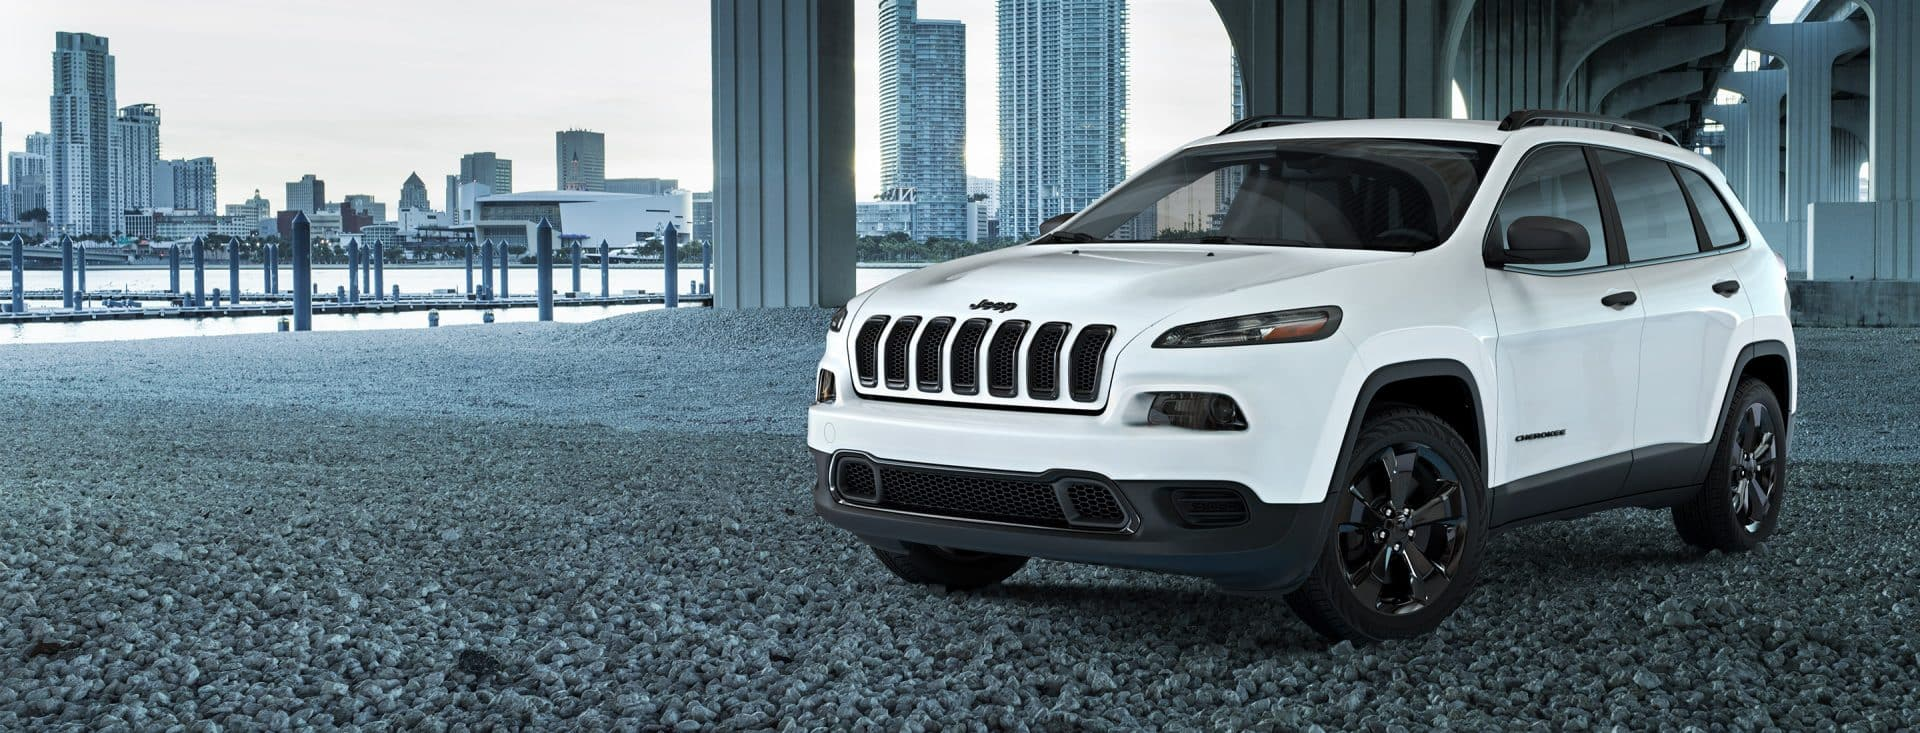 2017 jeep cherokee sport altitude hero